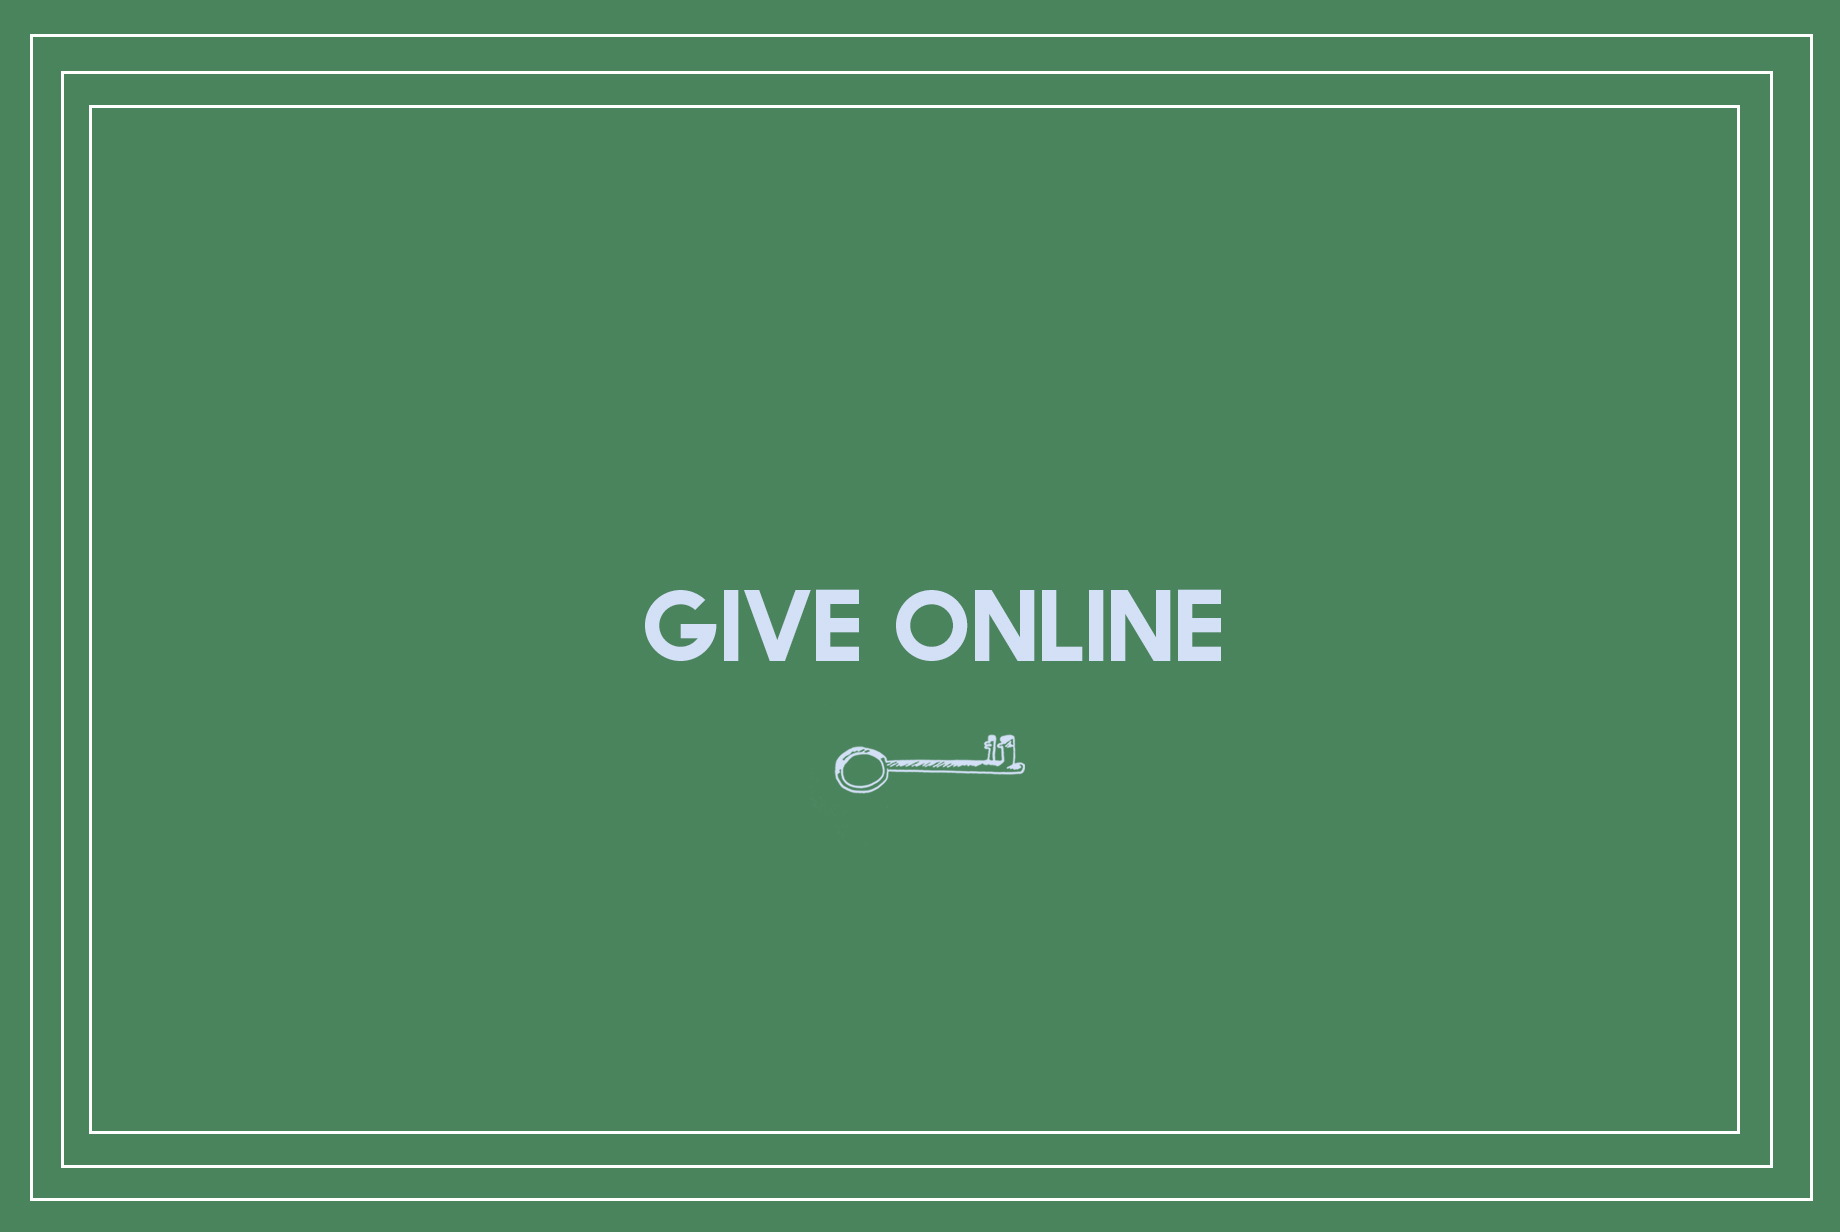 Give Online.jpg